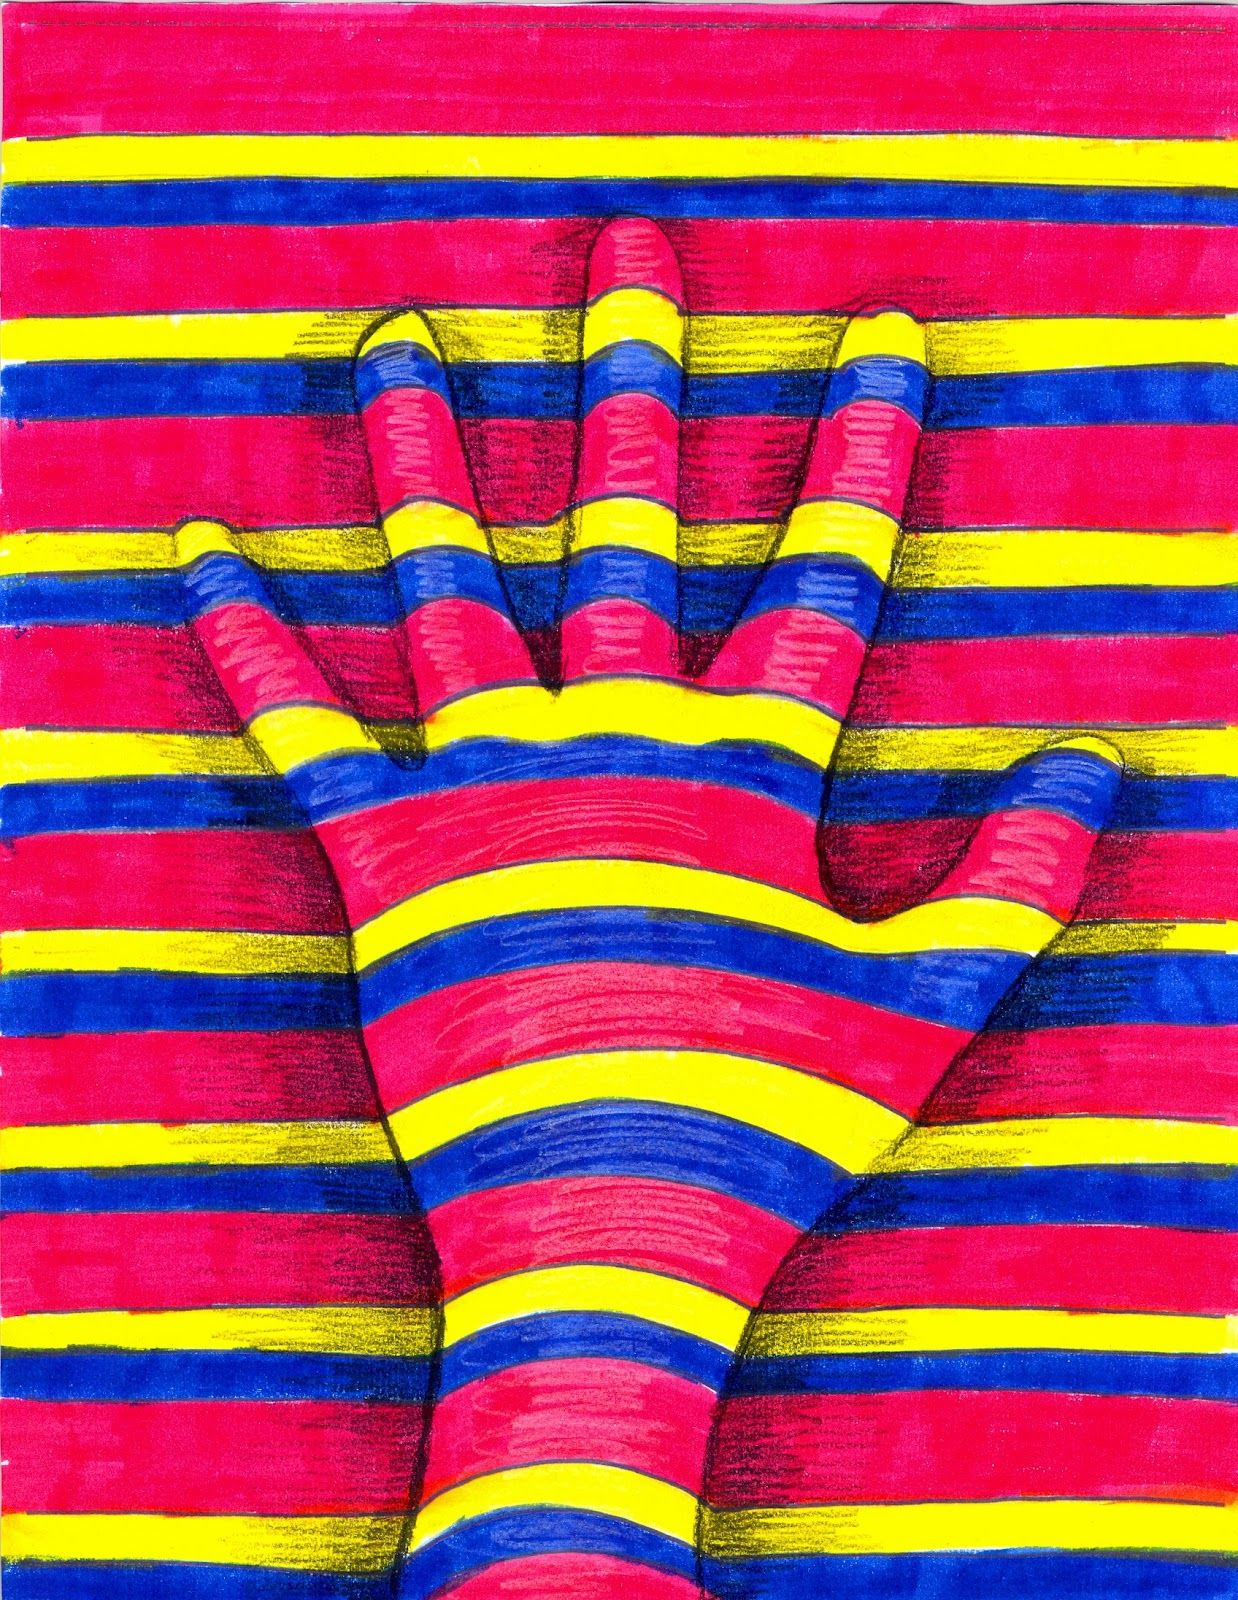 The Lost Sock Art Elements Using Hands